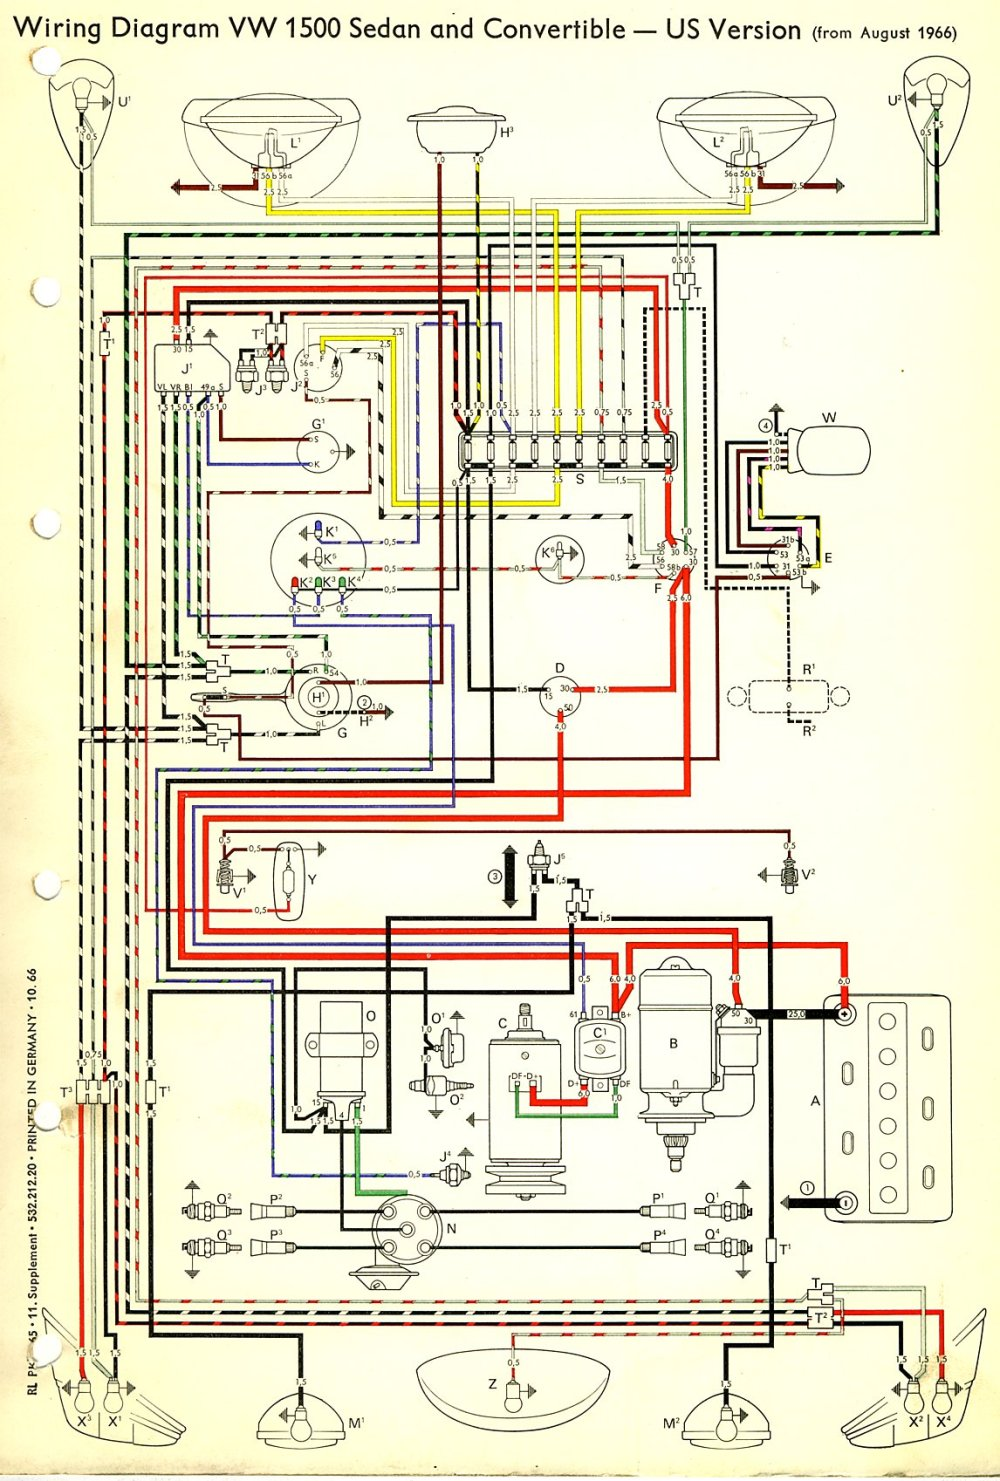 medium resolution of 66 vw wiring diagram 1300 wiring diagram third level 66 ford wiring diagram 66 vw wiring diagram